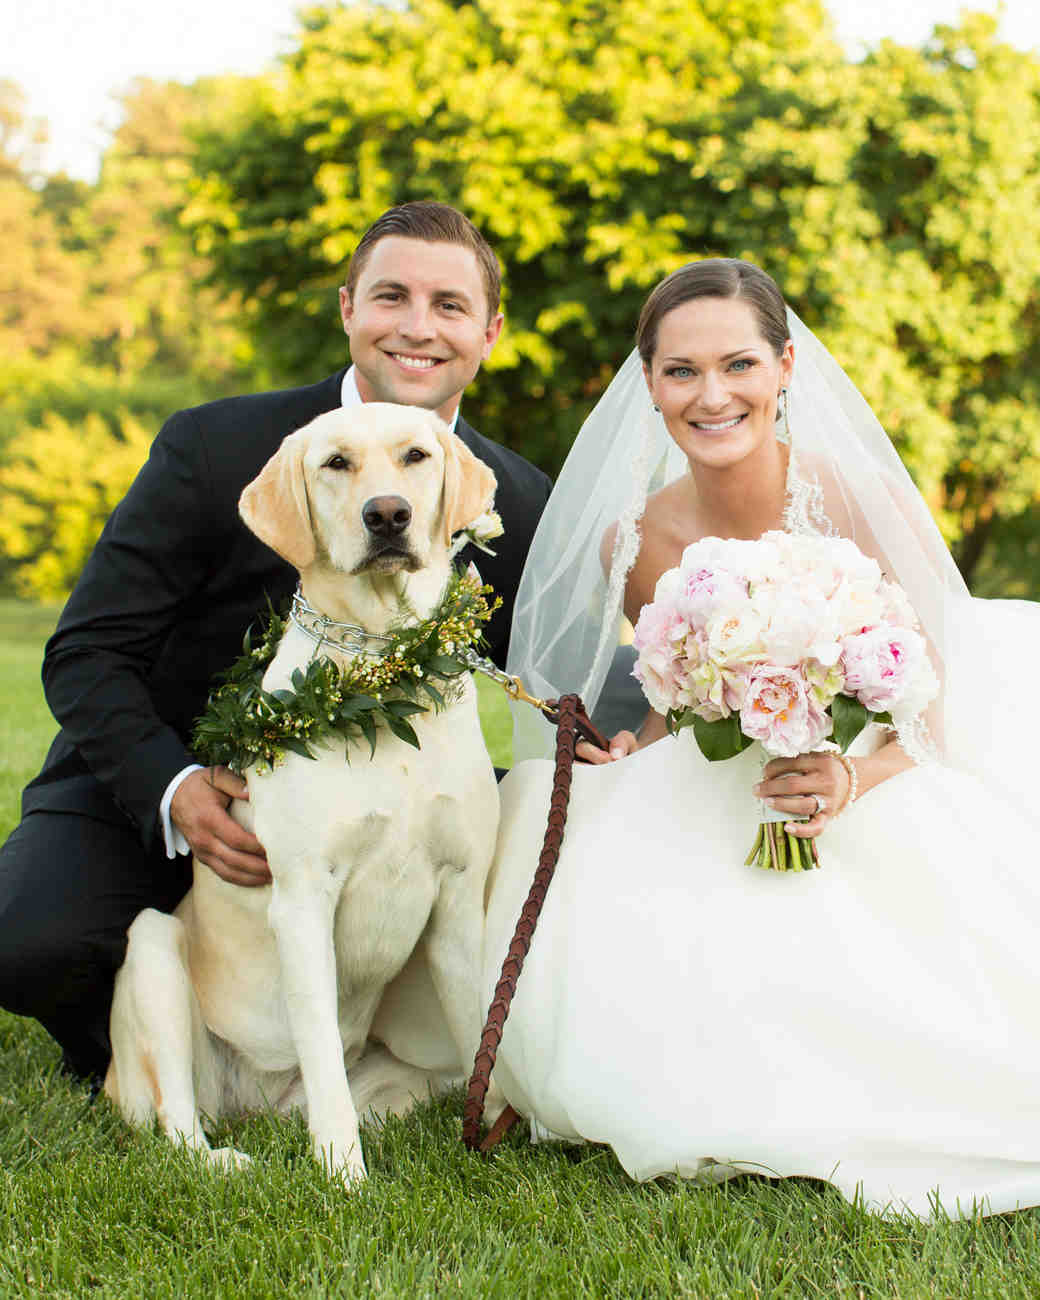 A Happy Newlywed Couple with Their Dog